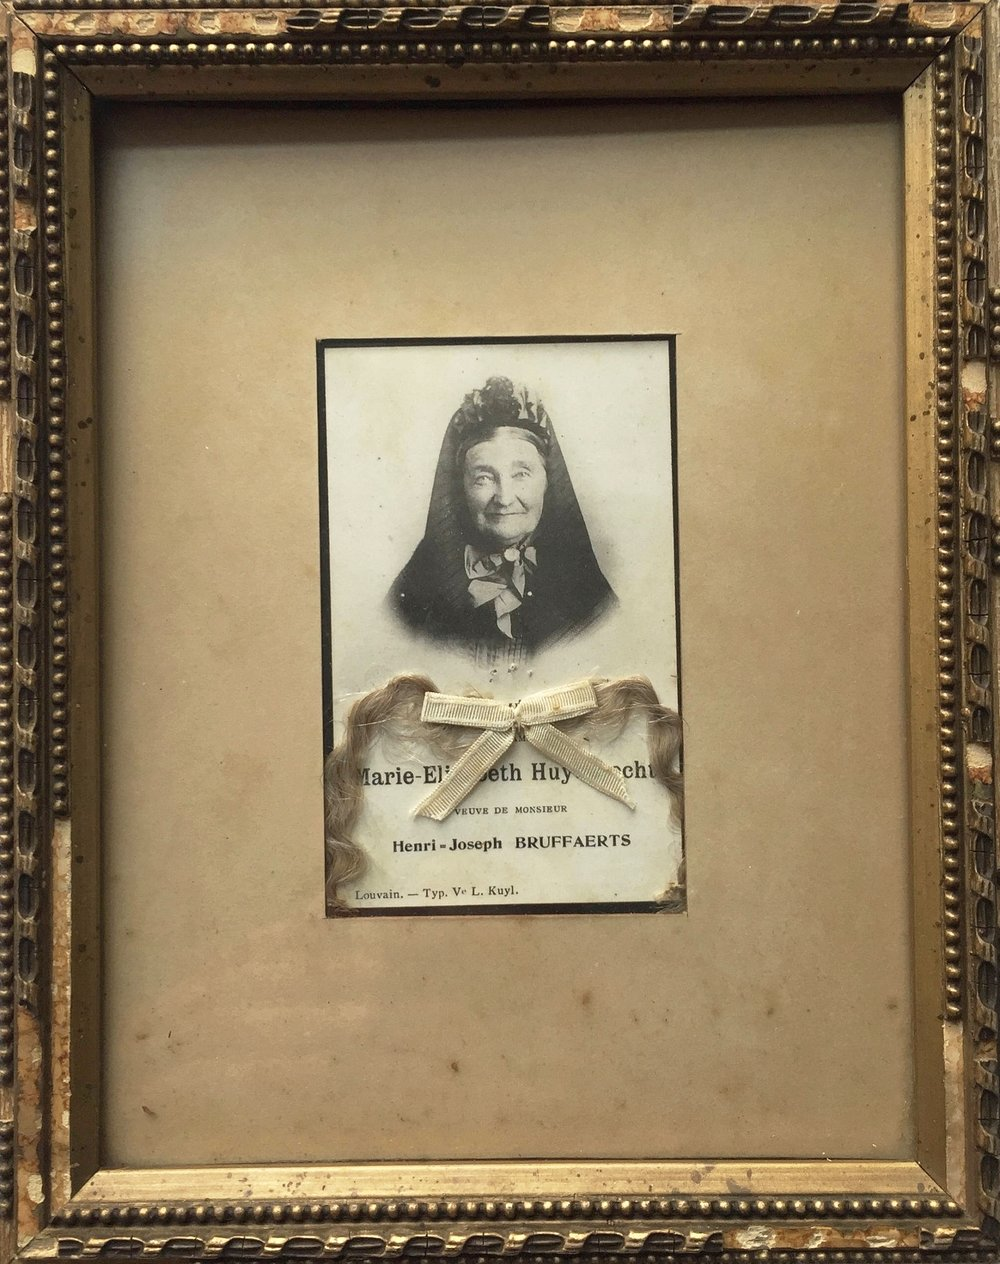 antique mourning frame Victorian memento mori souvenir frame with hair love tocken Belgian dame lady moving tribute curiosity cabinet sepia